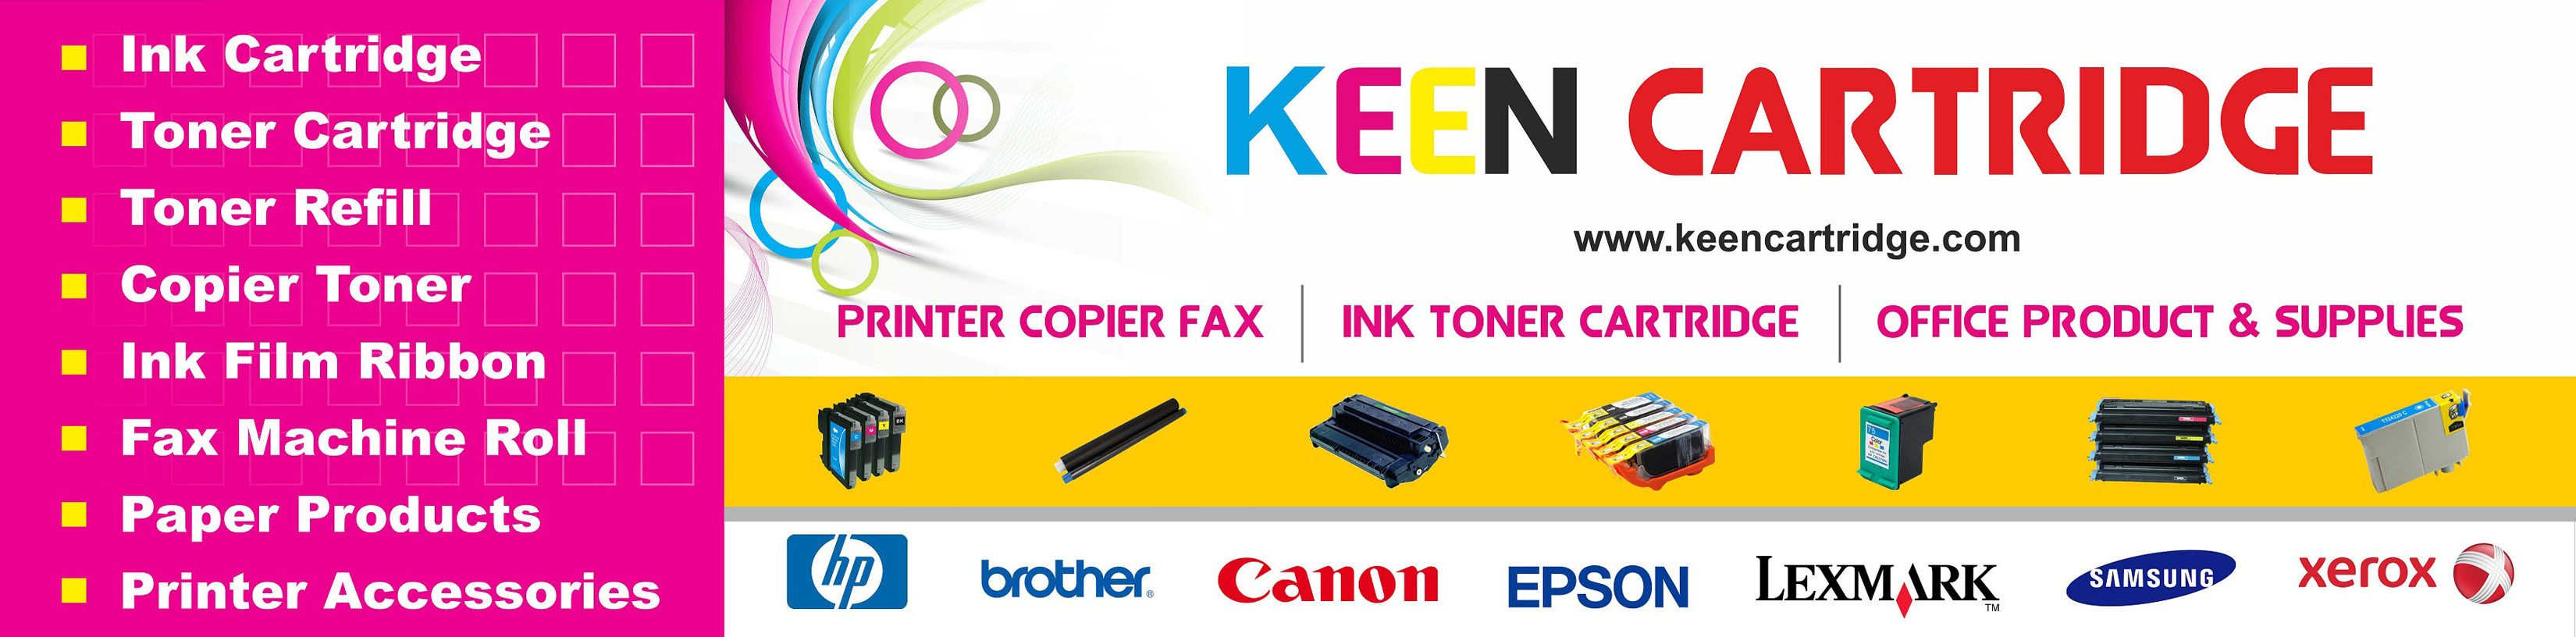 Ink Toner cartridges